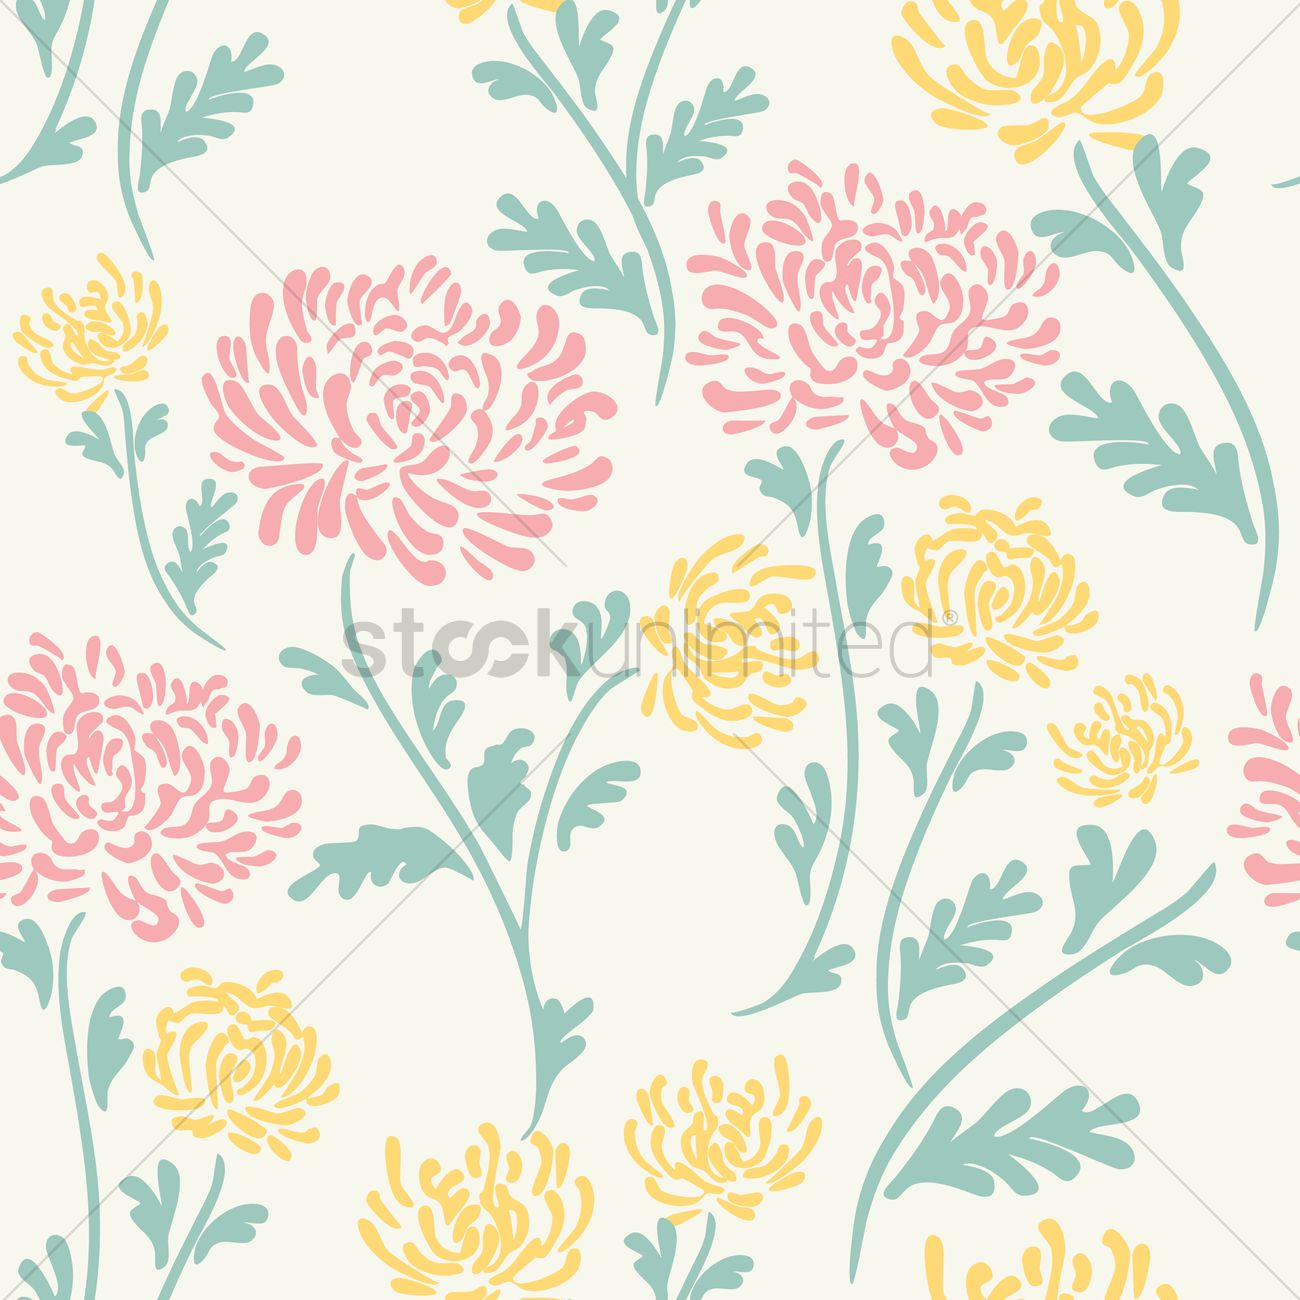 Fall Wallpaper Border Floral Background Design Vector Image 1995473